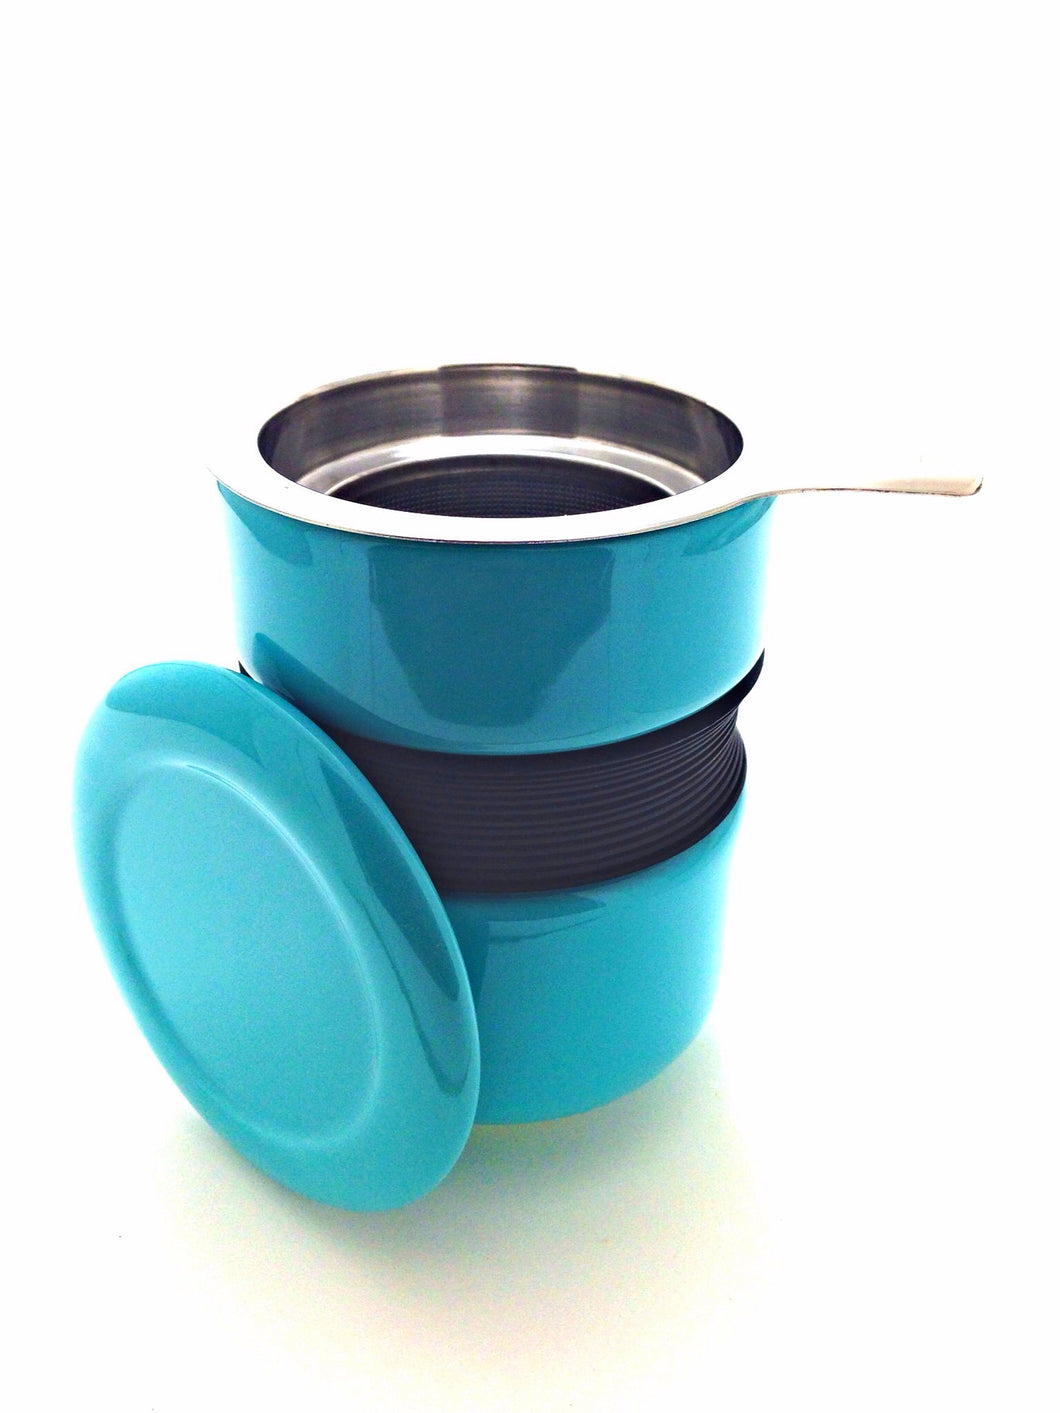 Unique Teacup with Infuser and Lid